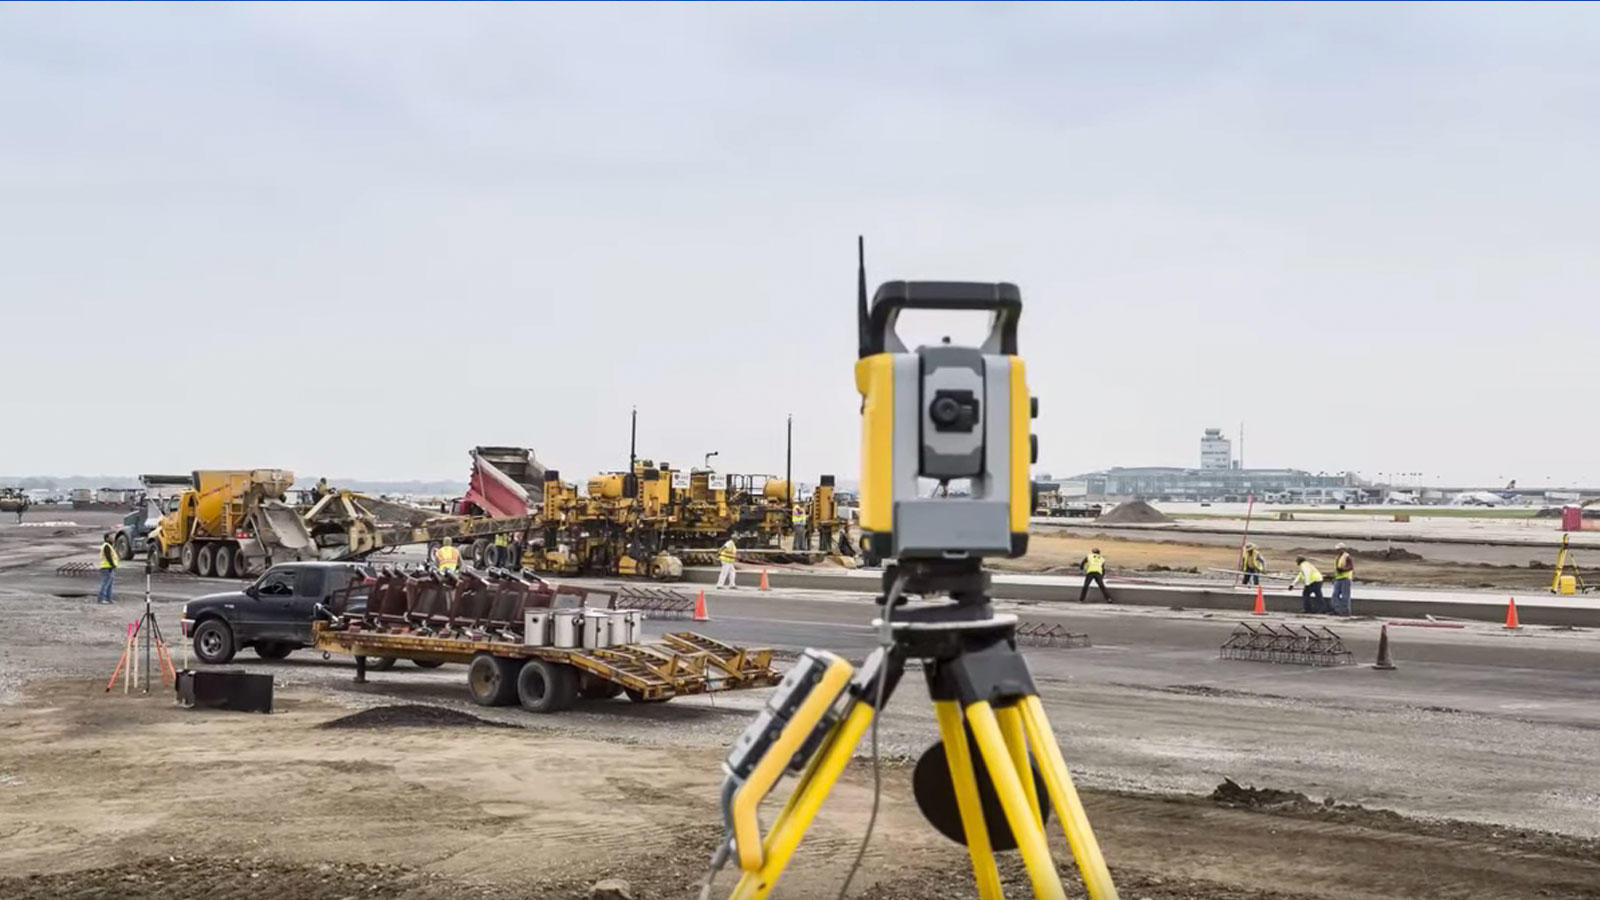 trimble total station and hot swap